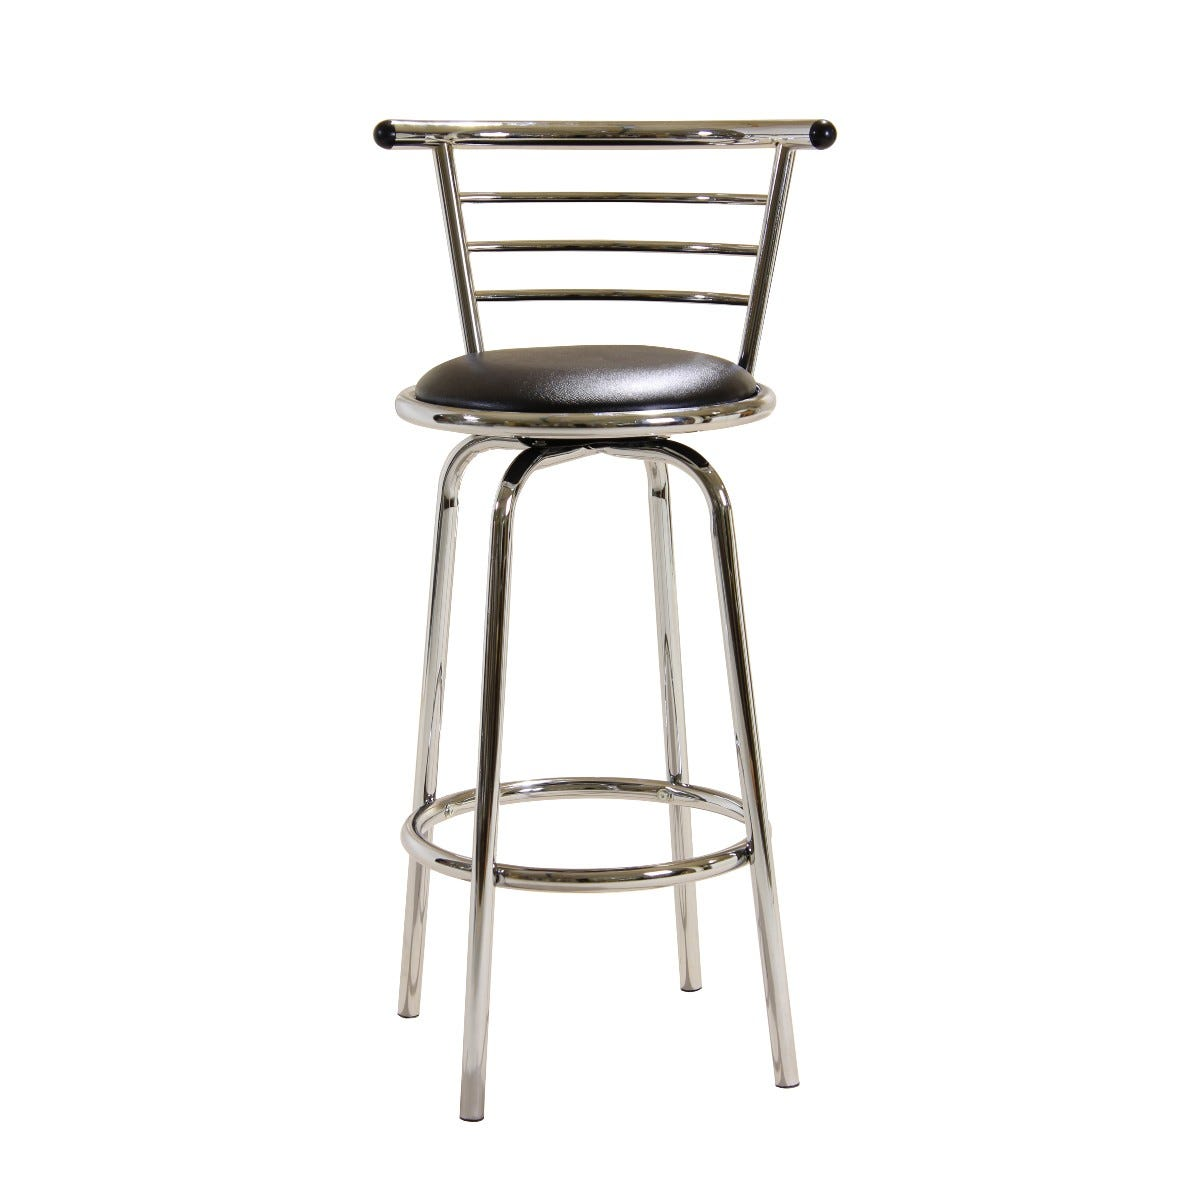 102cm Chrome Bar Stool with Swivel Seat and Wide Backrest